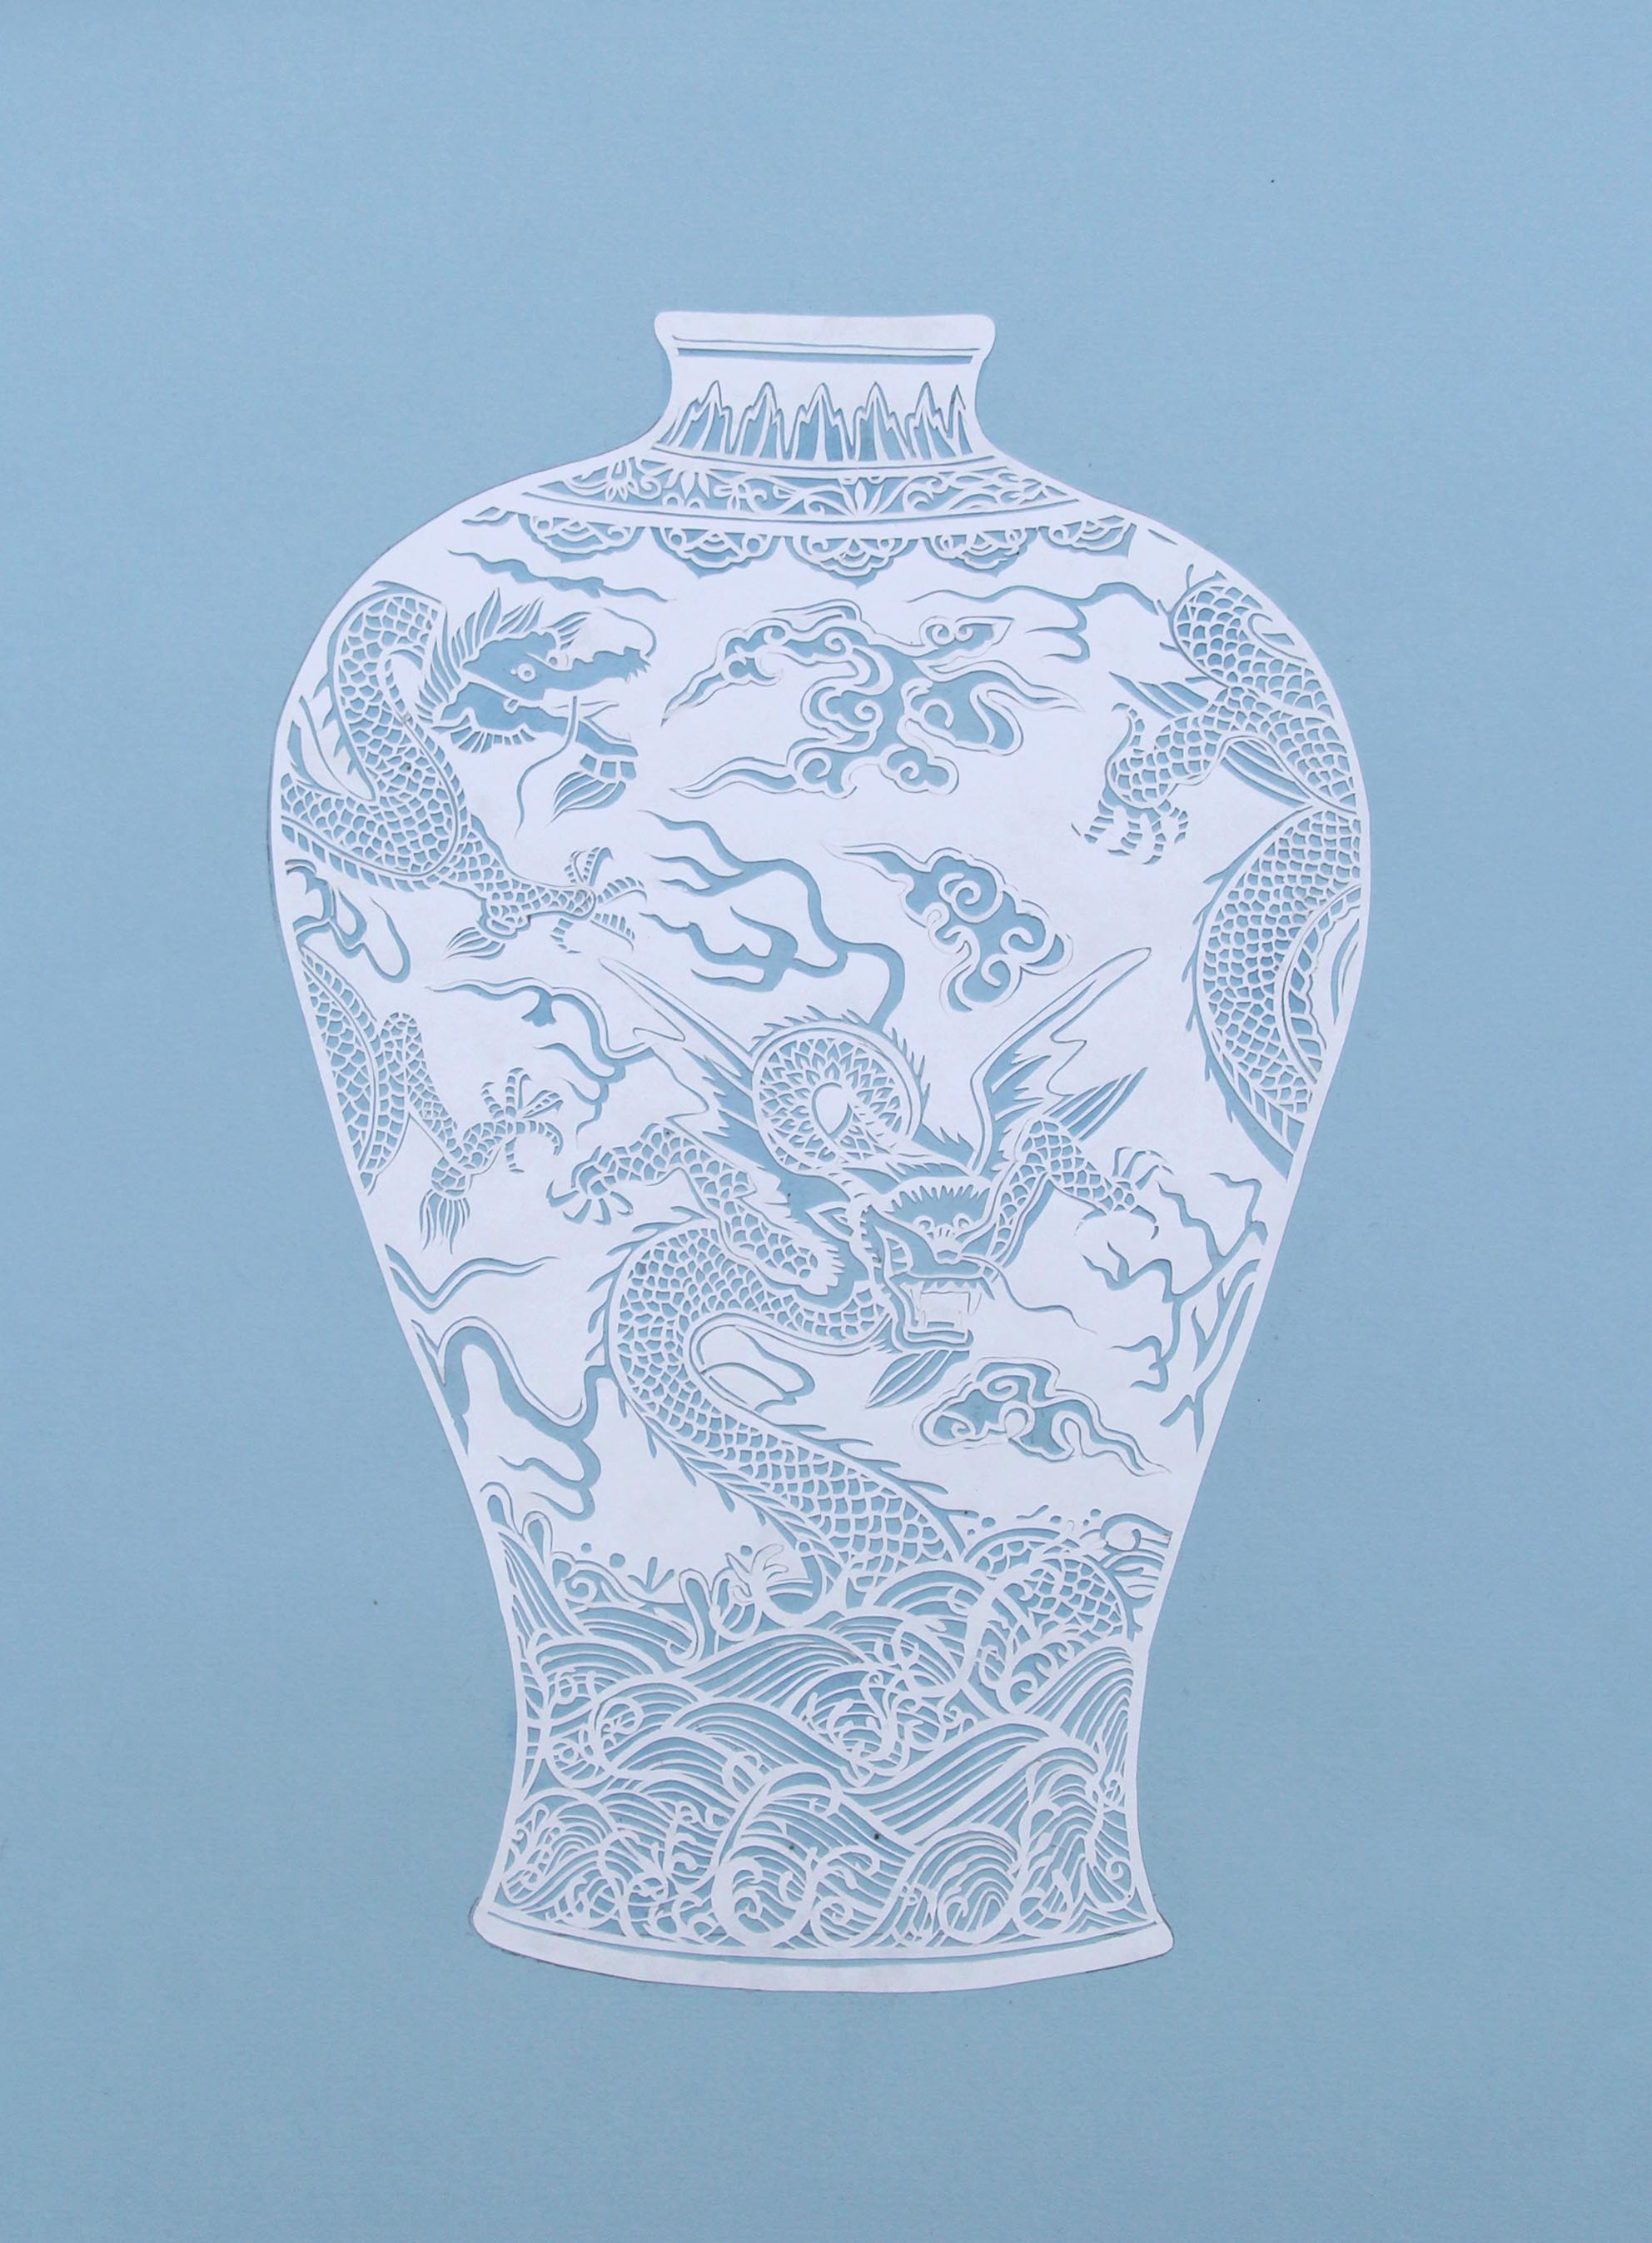 An example of paper cutting at Chau Art